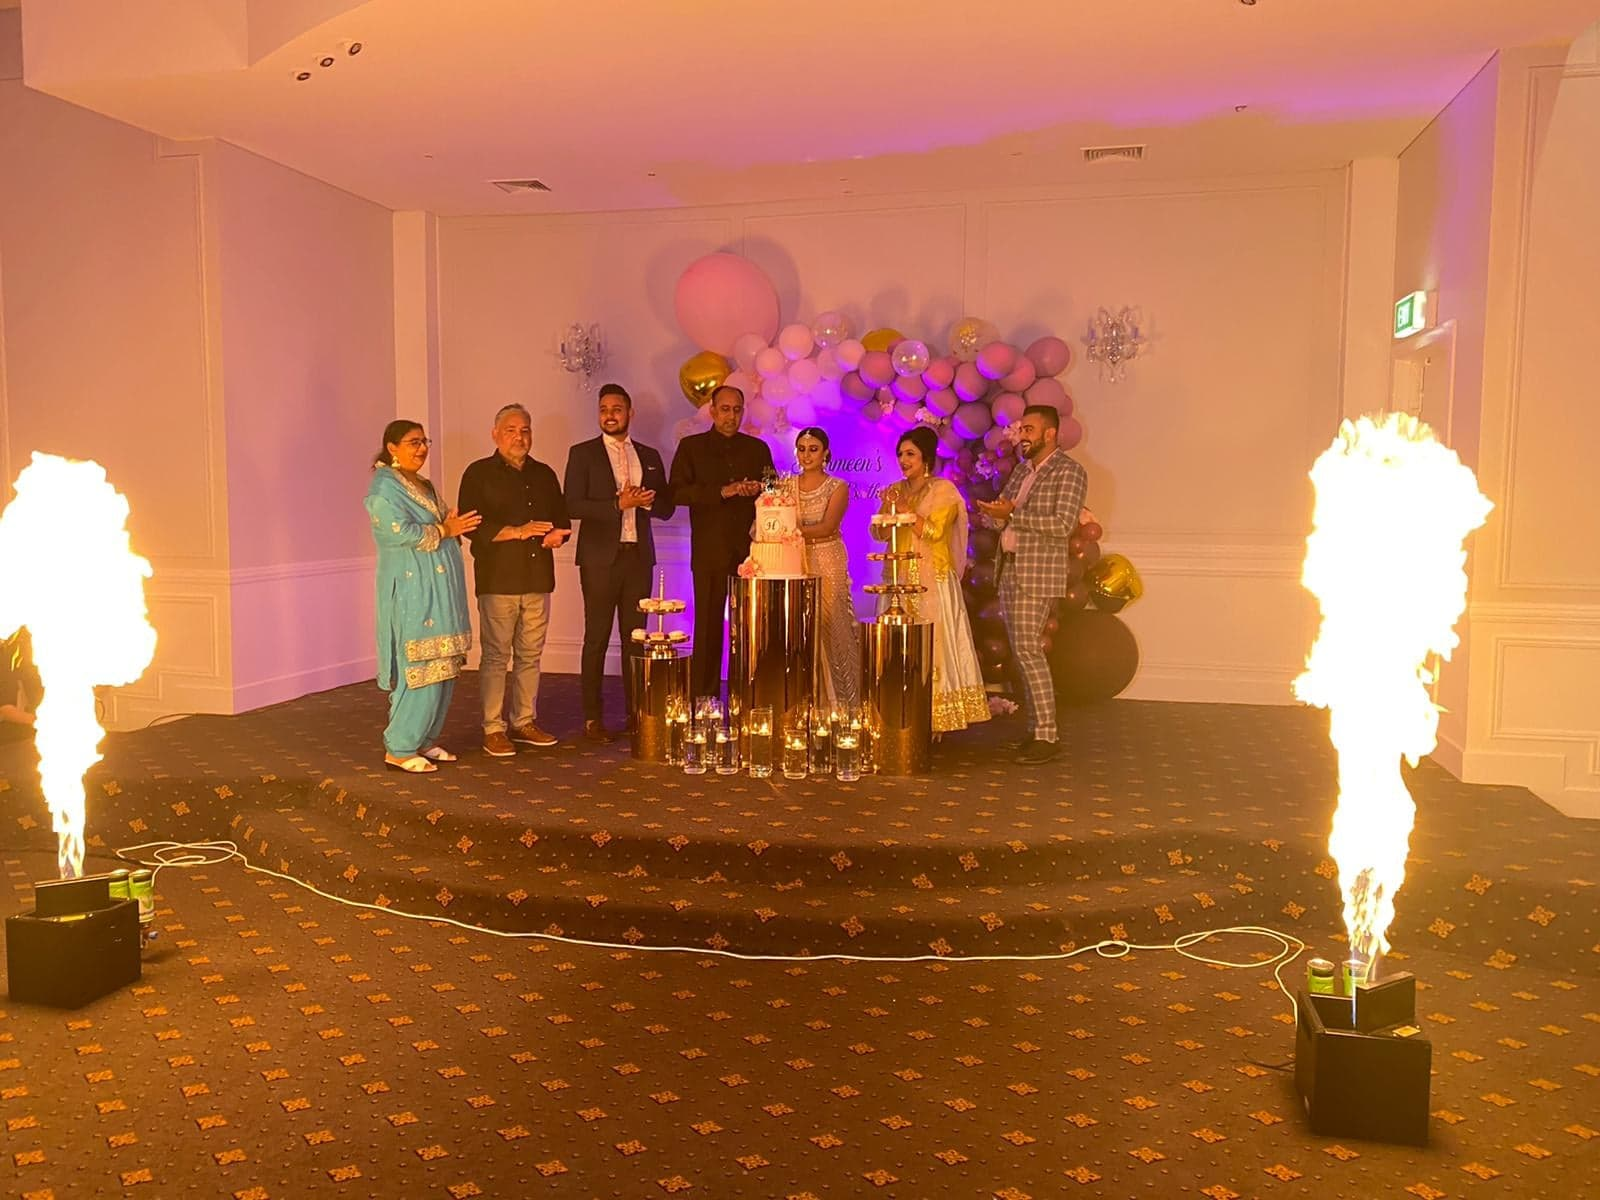 Flame thrower FX hire Melbourne